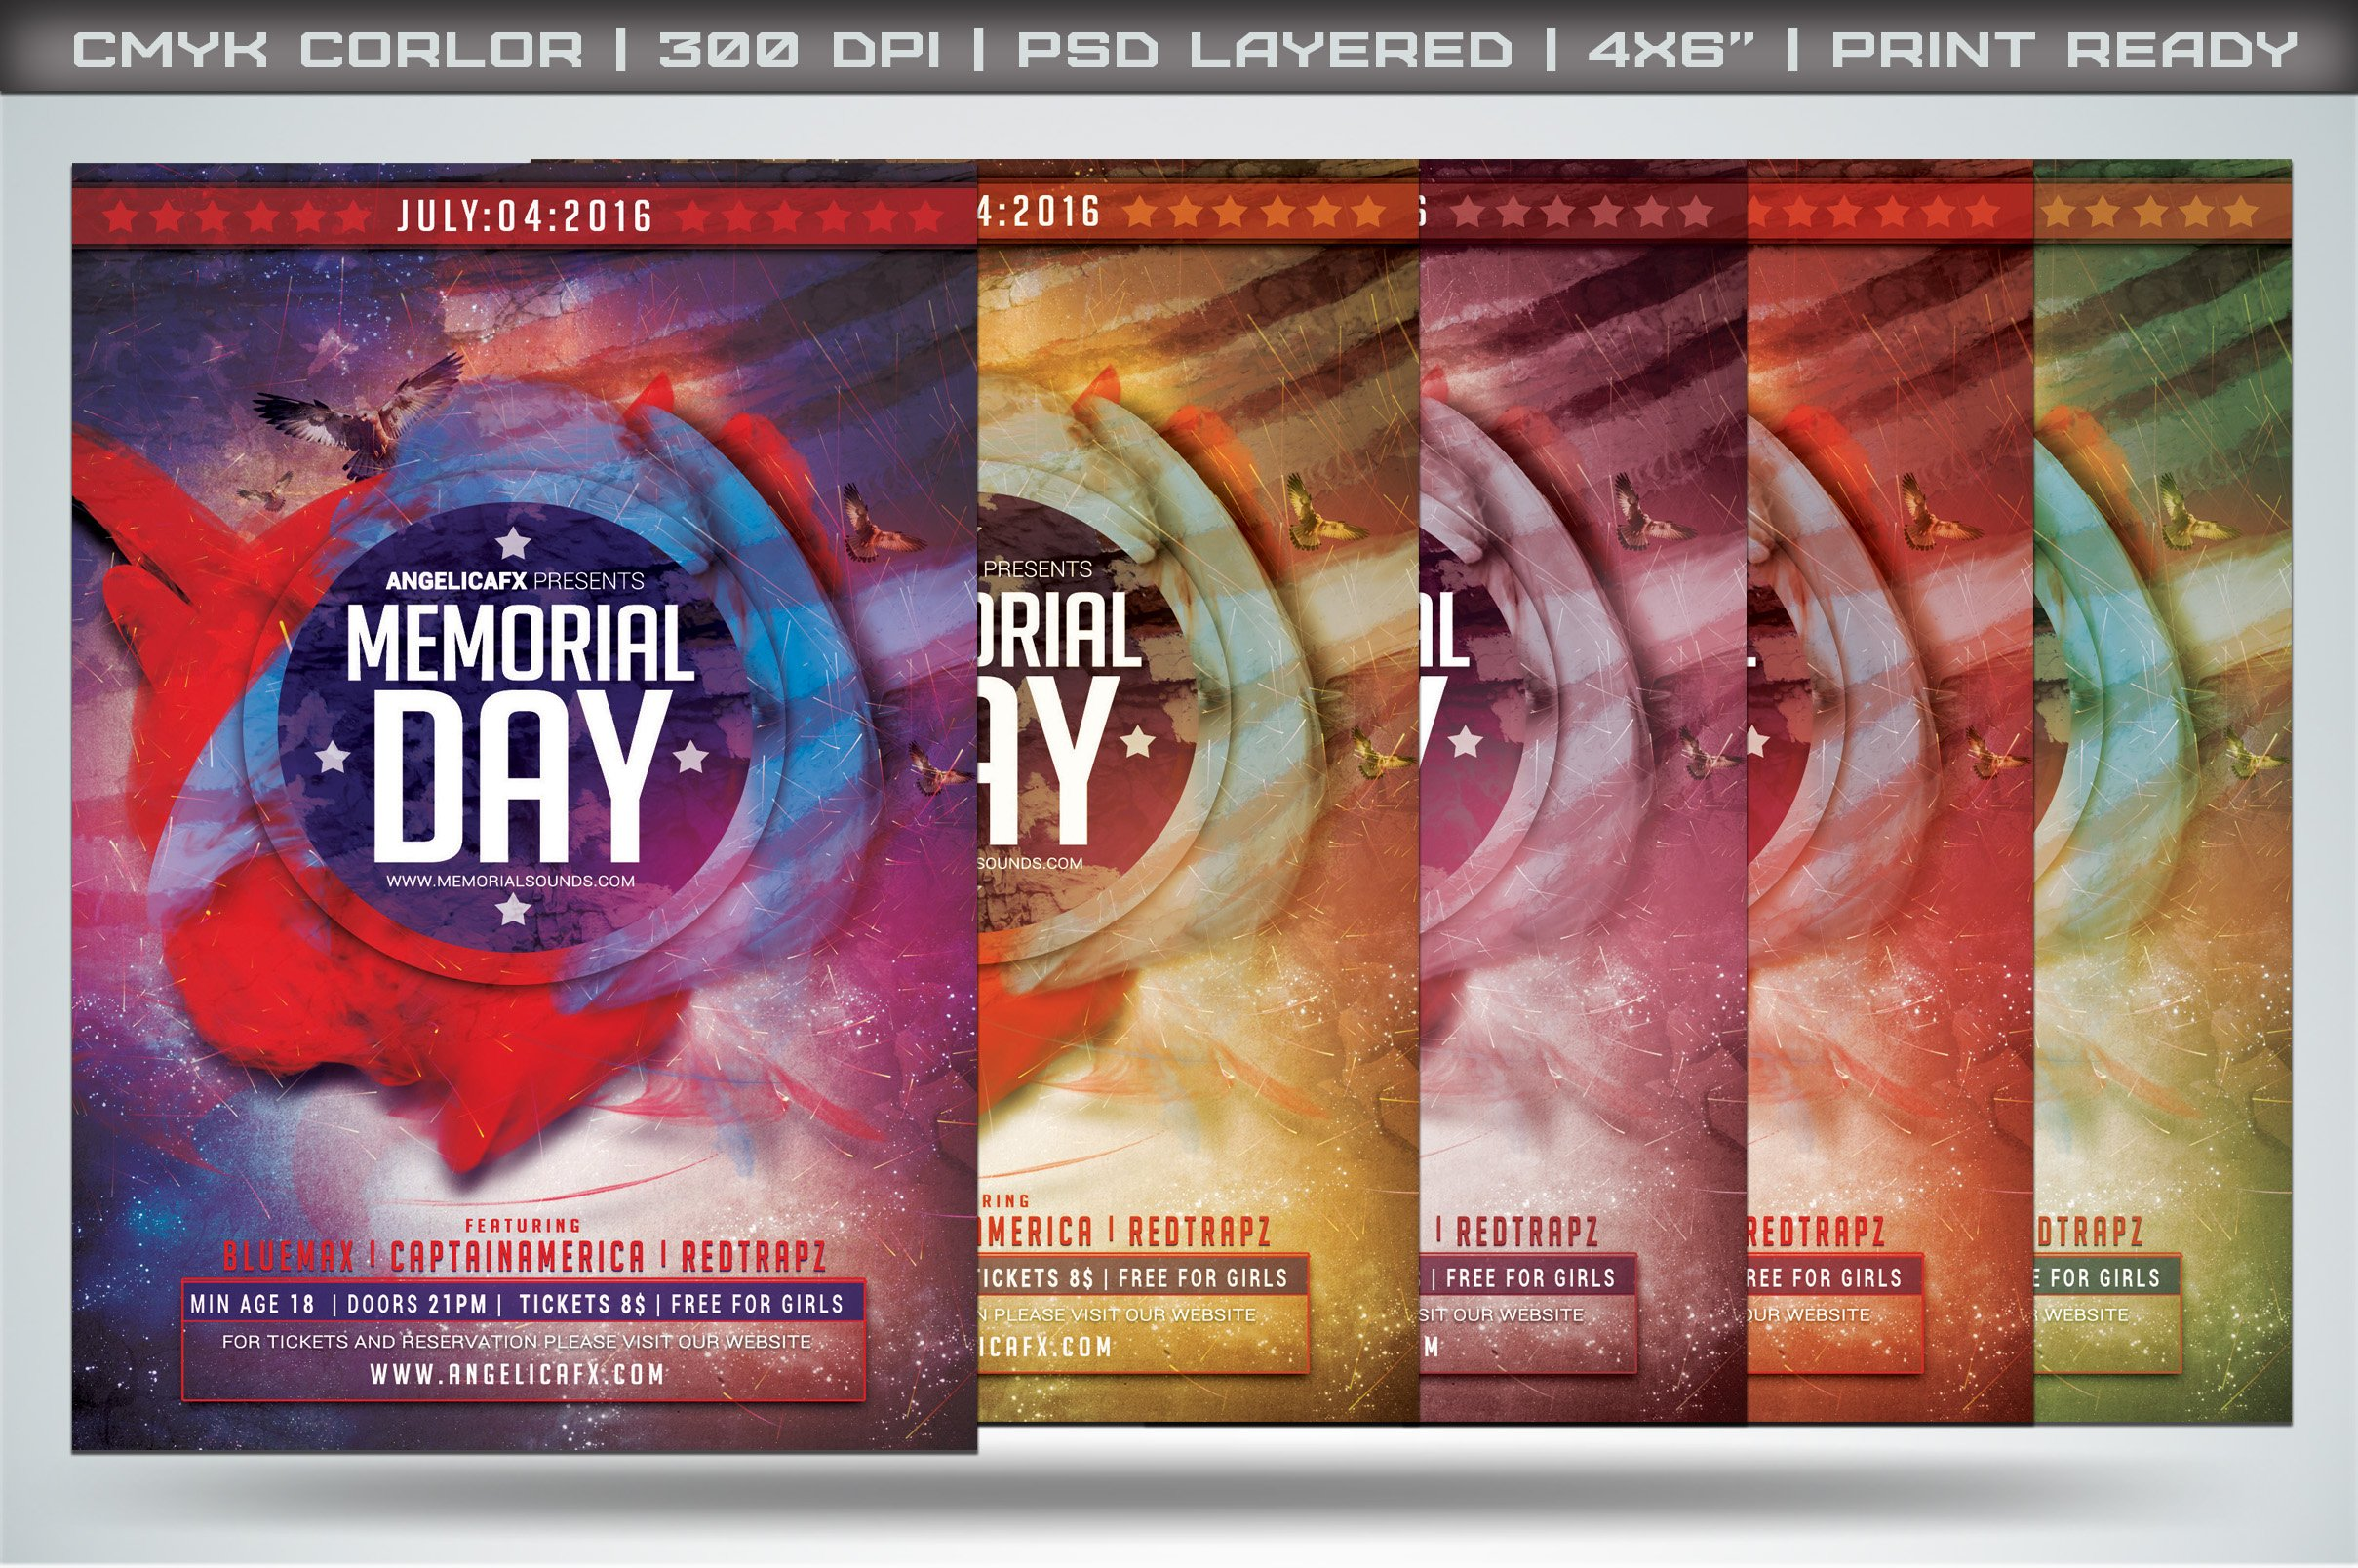 Memorial Day Flyer Template Flyer Templates Creative Market – Memorial Day Flyer Template